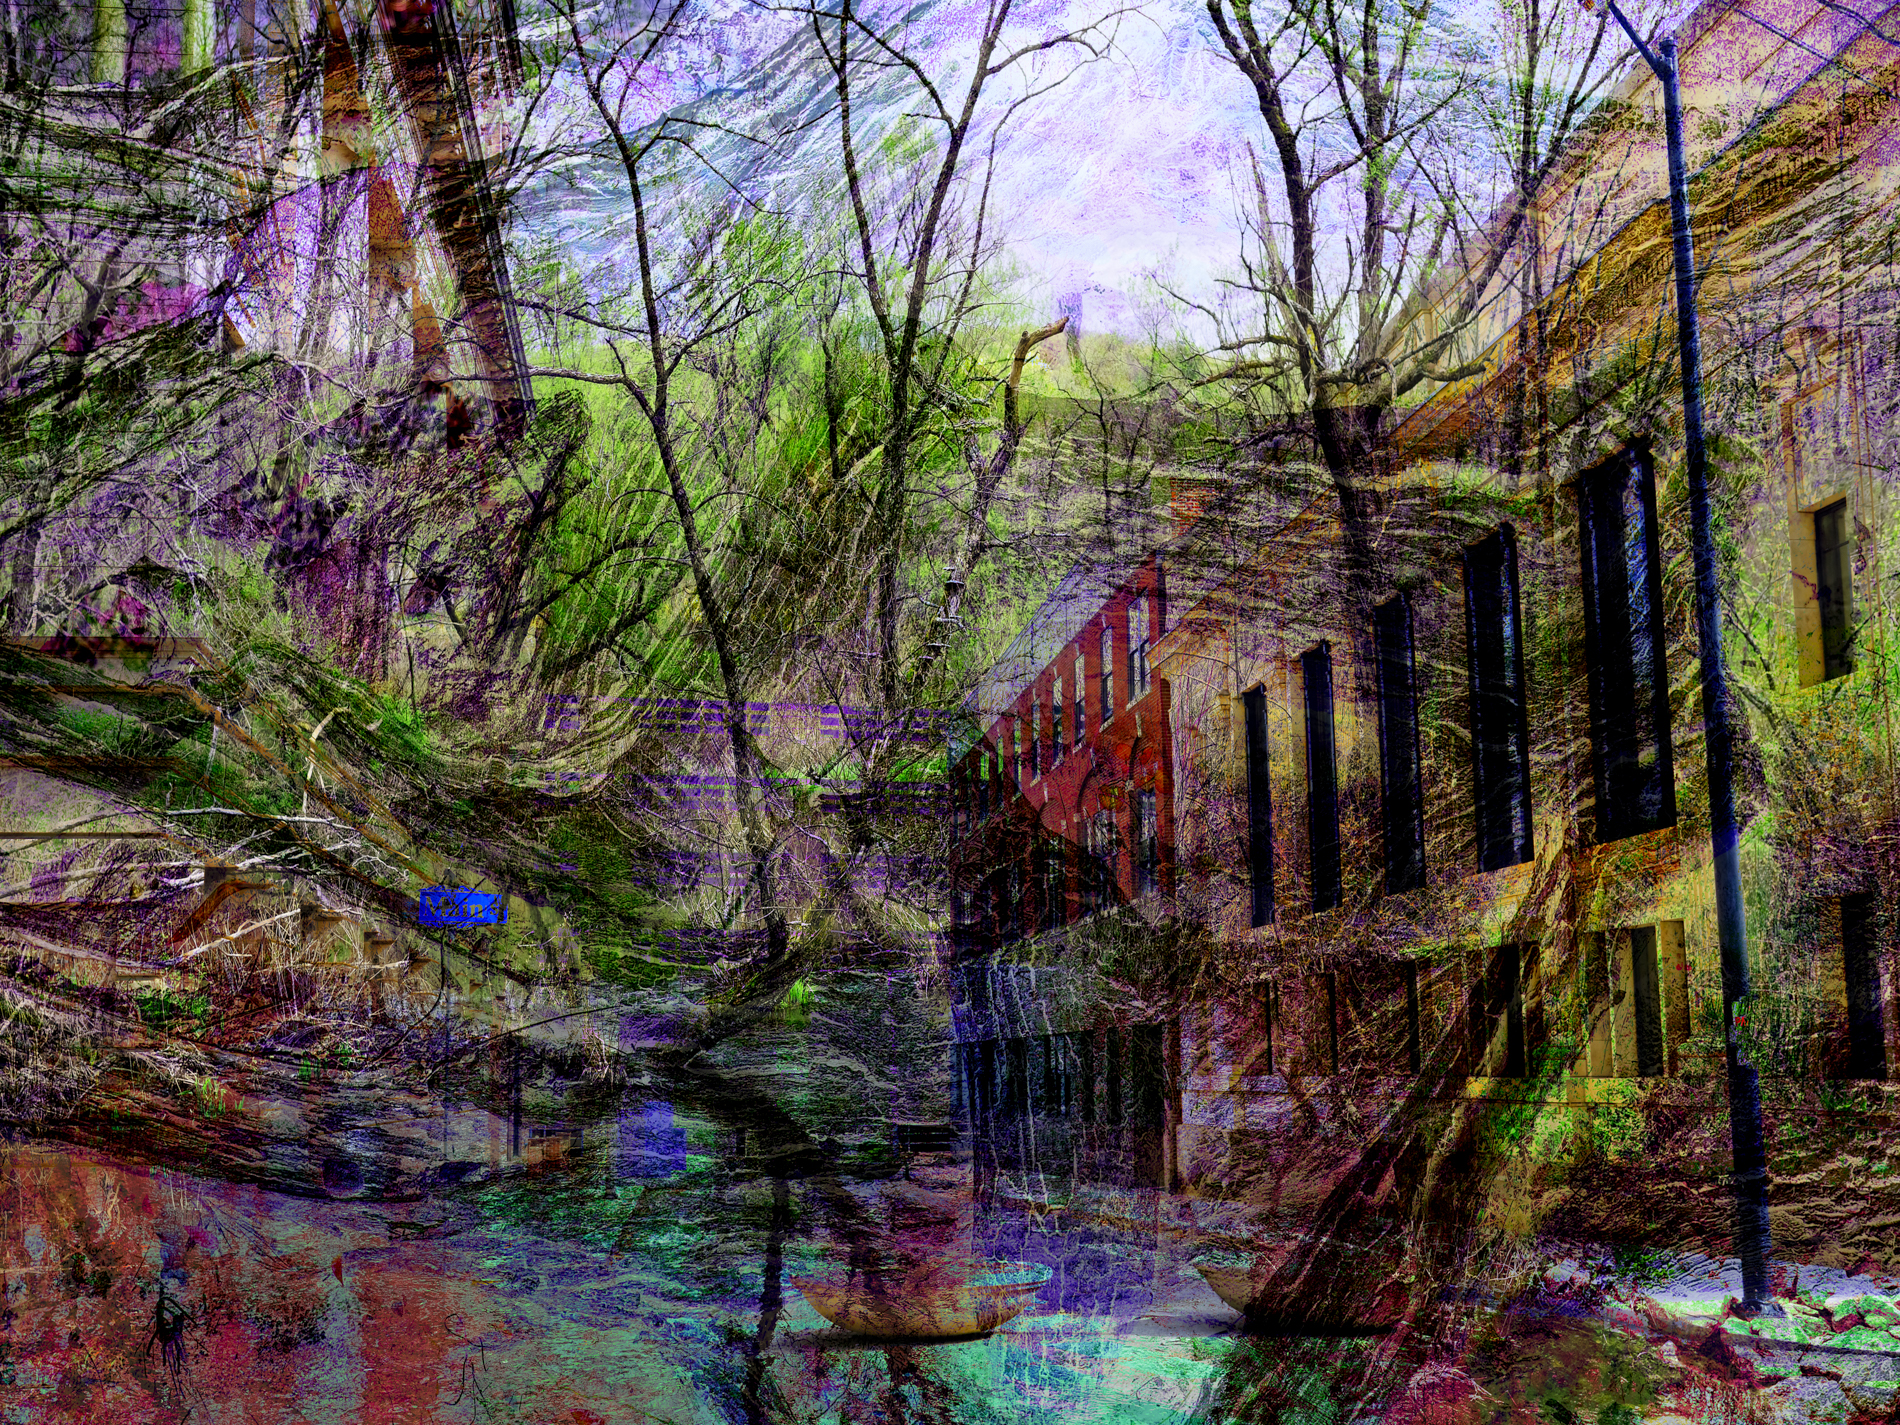 Honorable Mention - Main Street